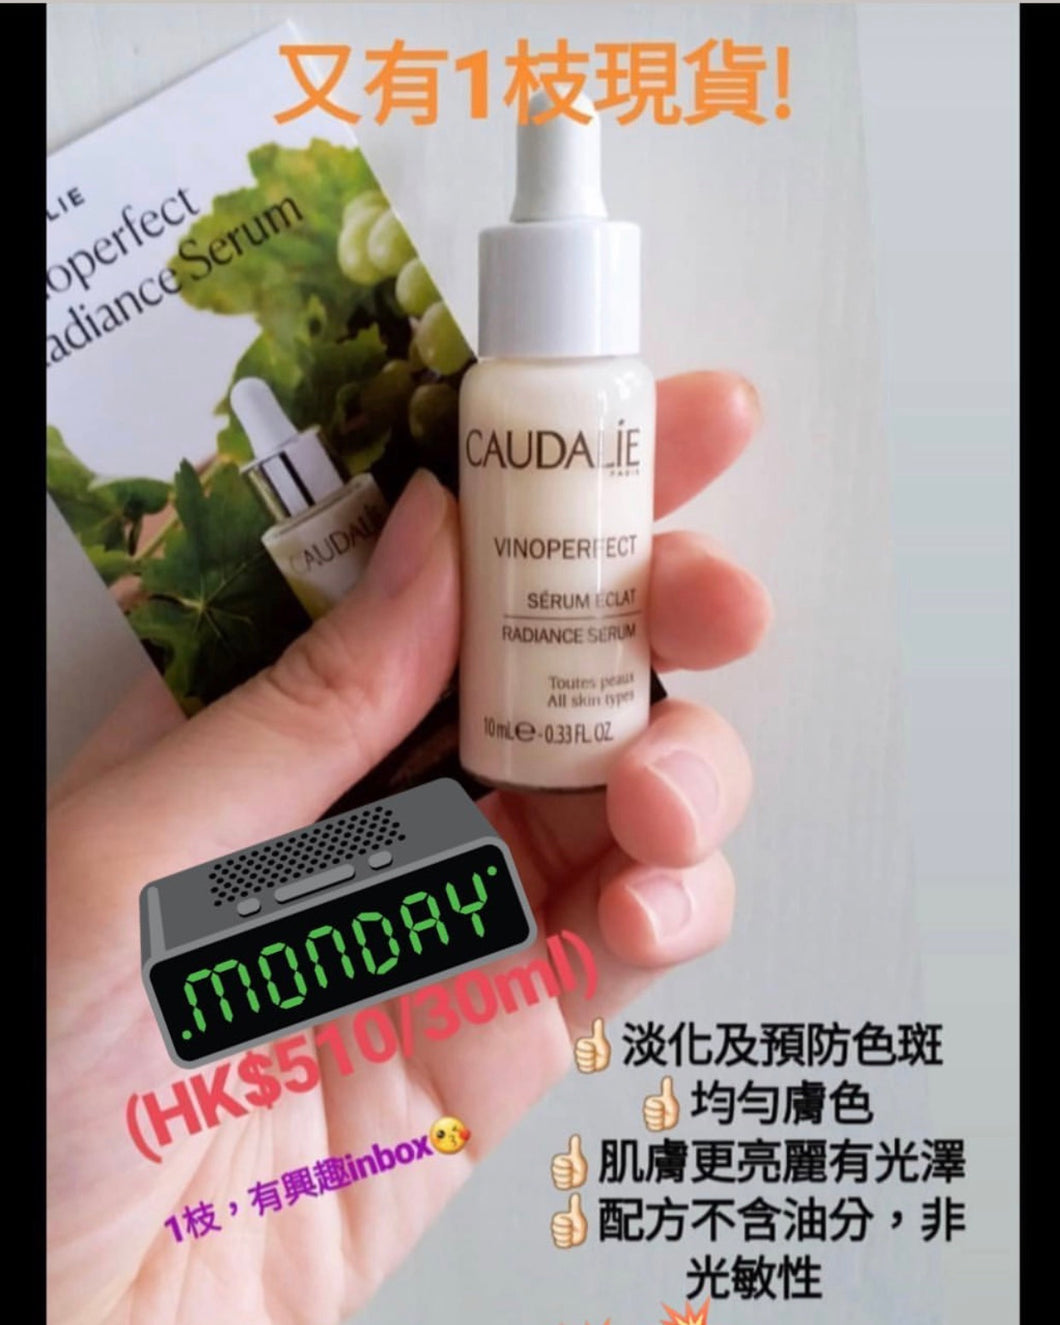 Caudalie 美白精華 10ml - buy European skincare in Hong Kong - 1click2beauty